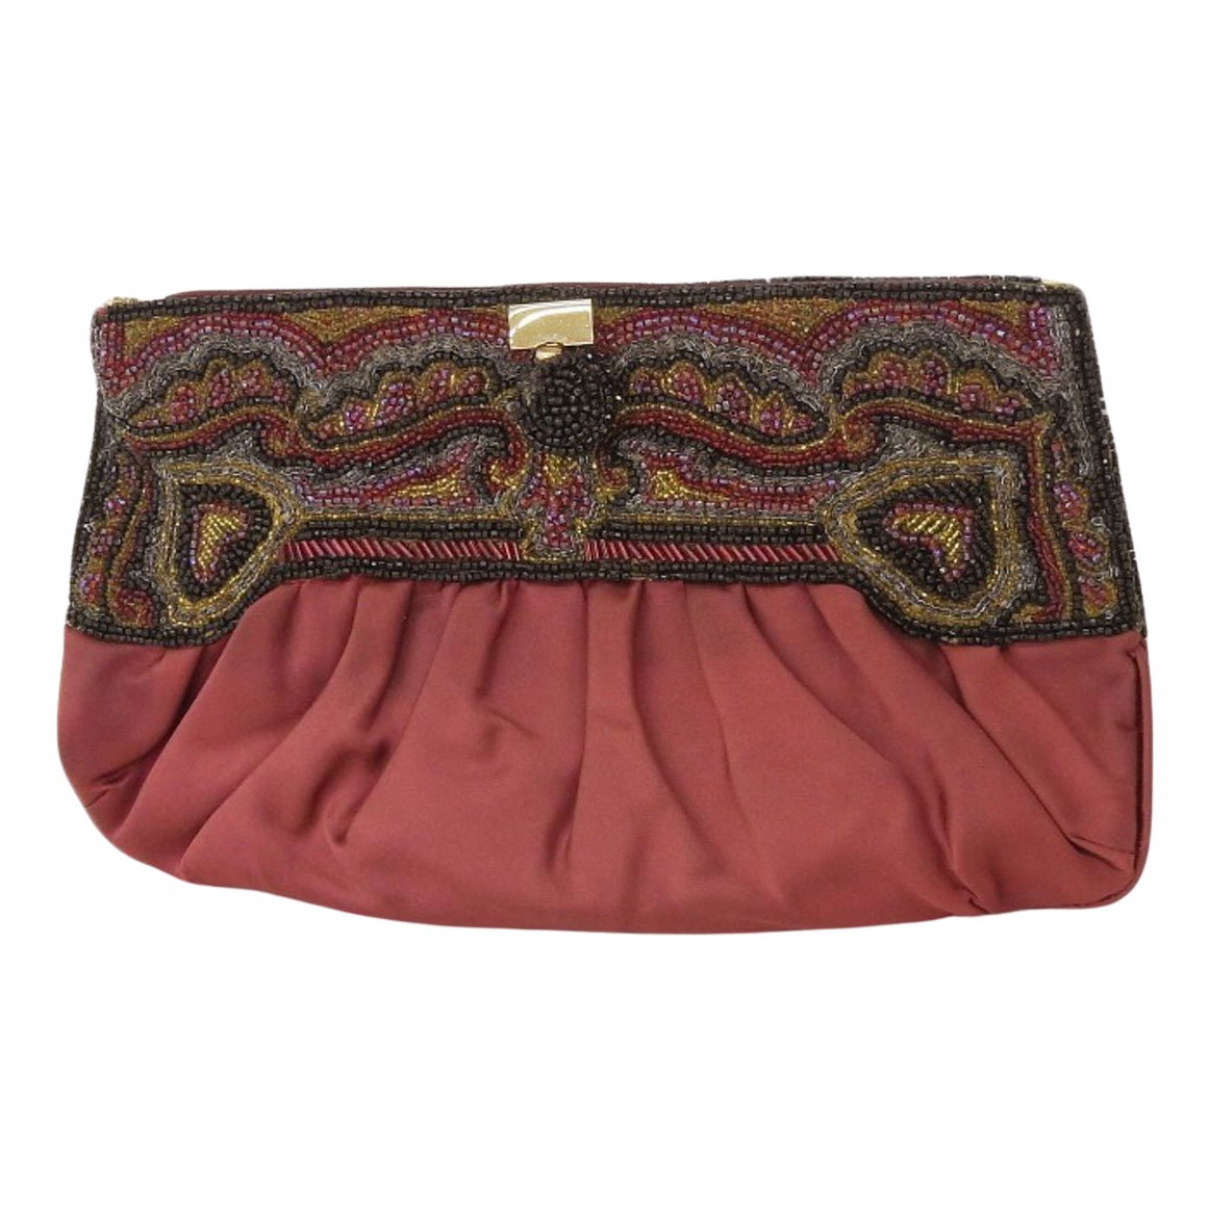 Gucci \N Burgundy Cloth Clutch bag for Women \N